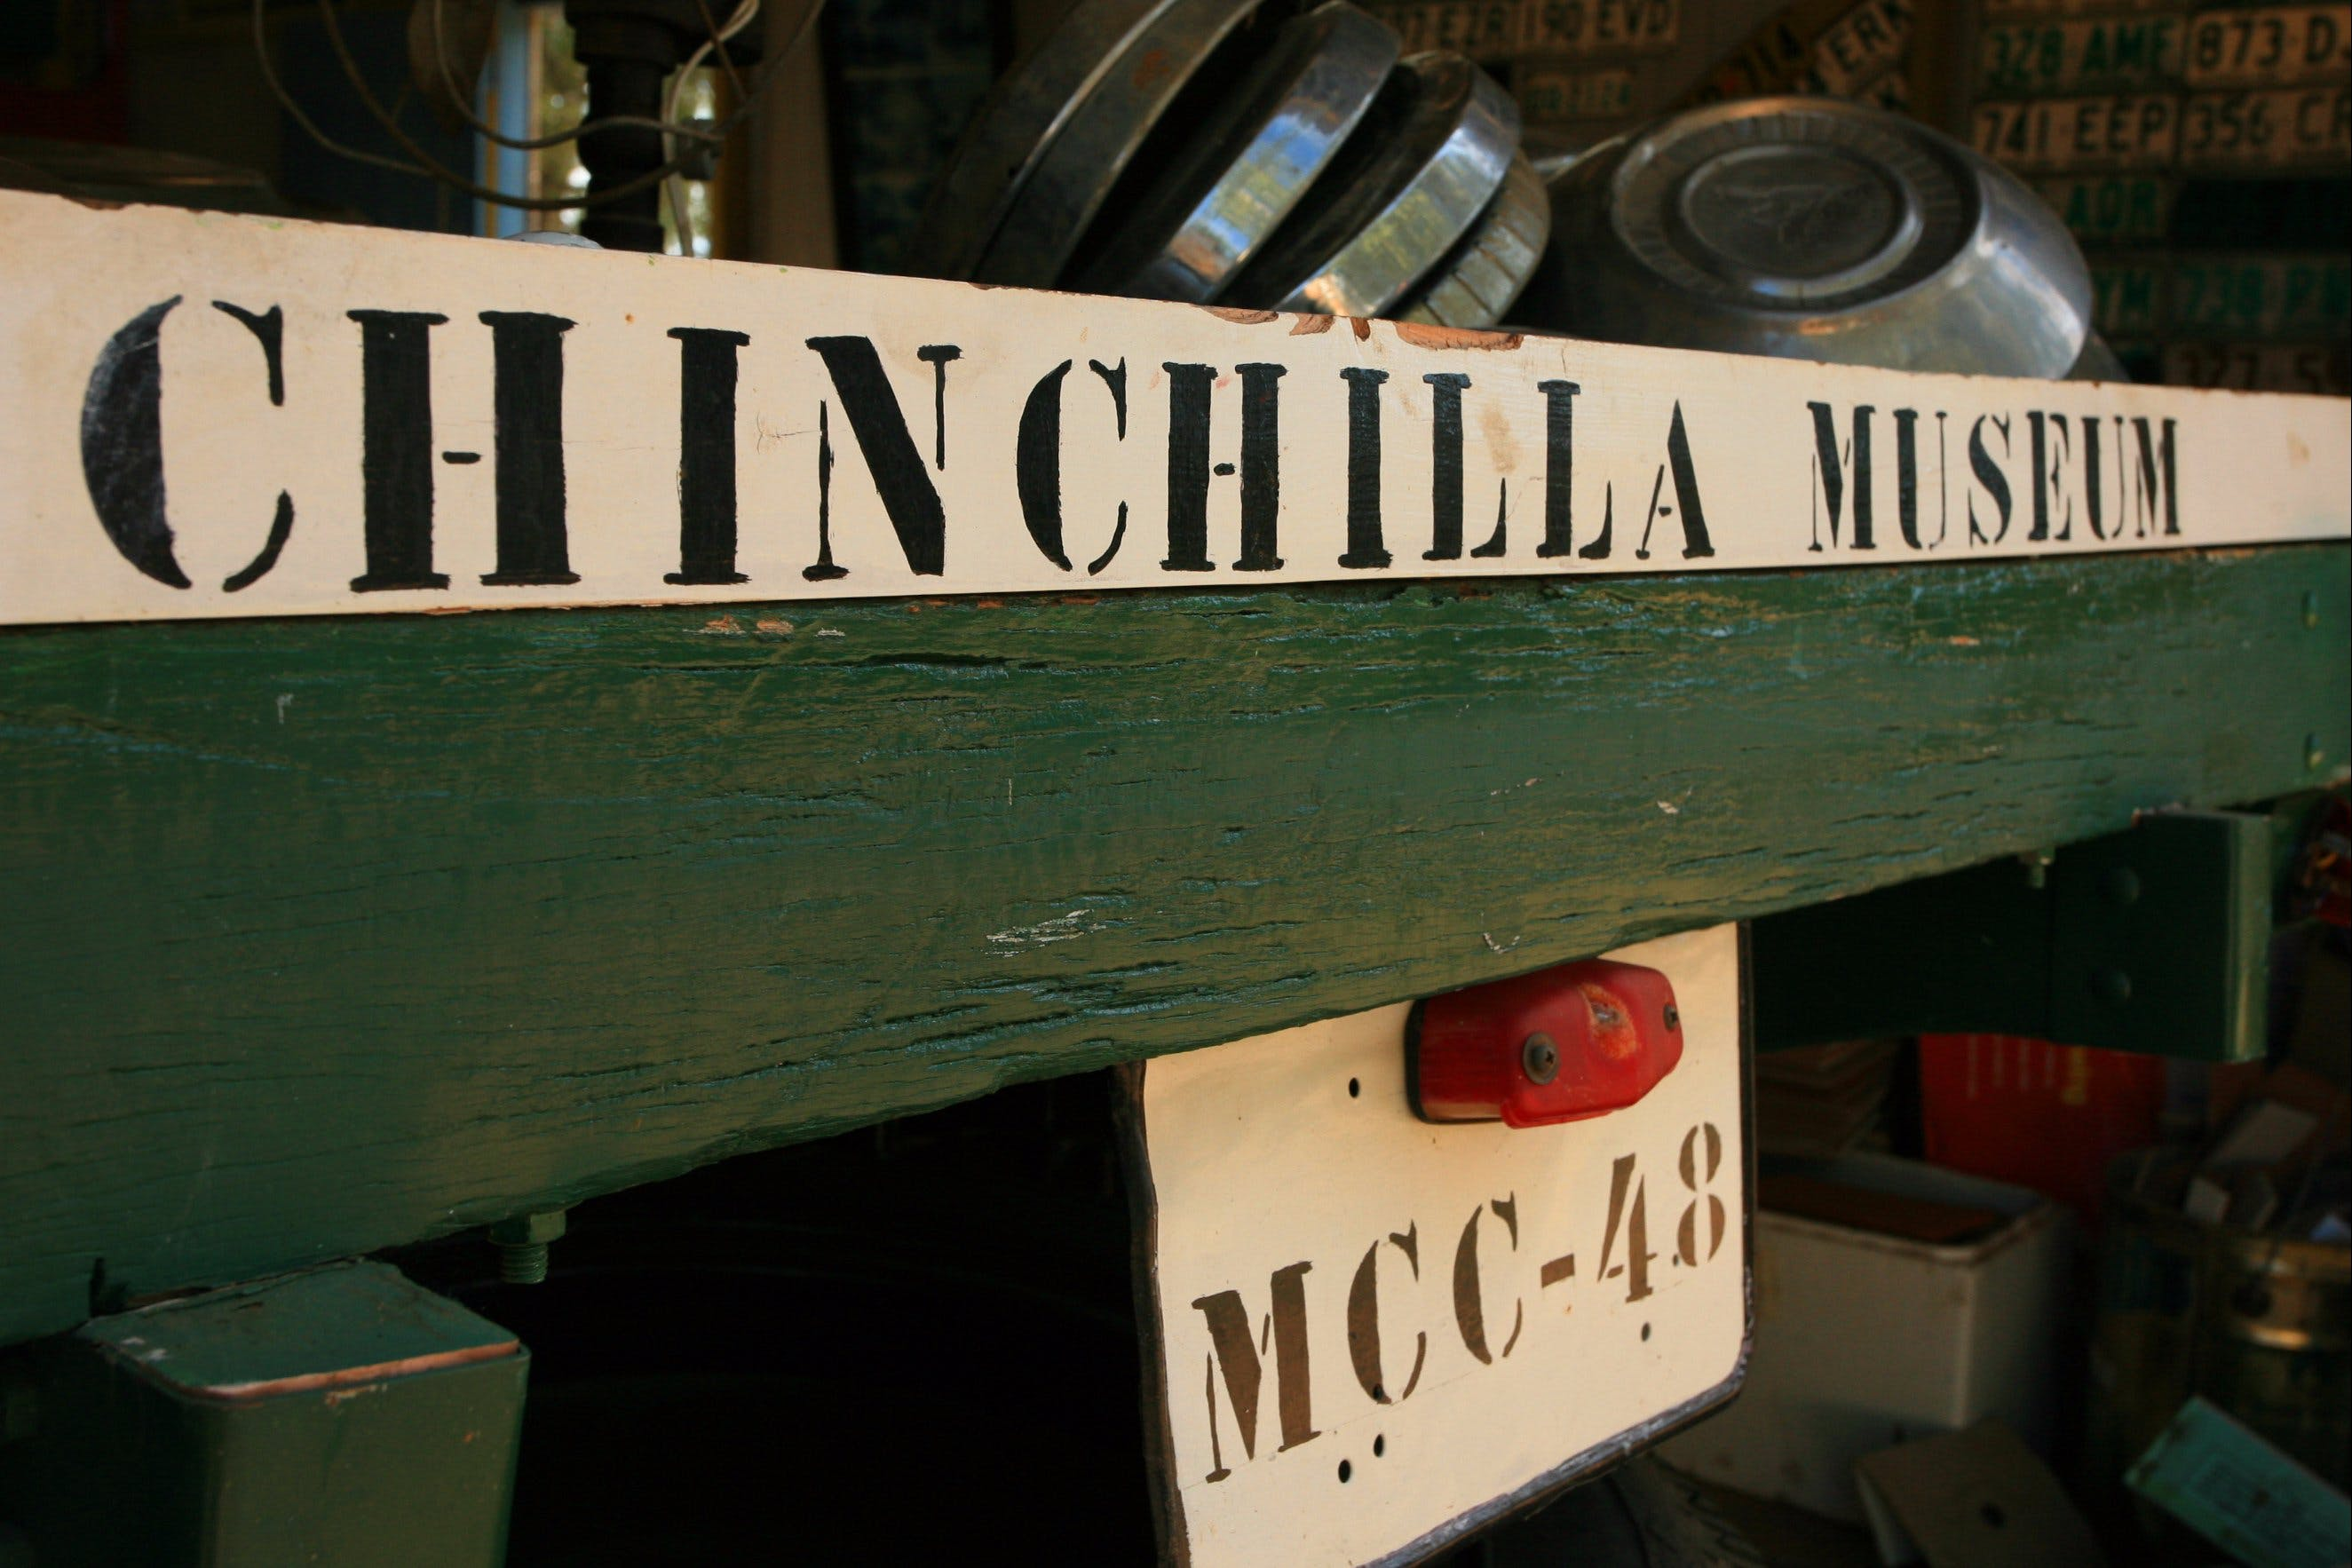 Chinchilla Historical Museum - Find Attractions